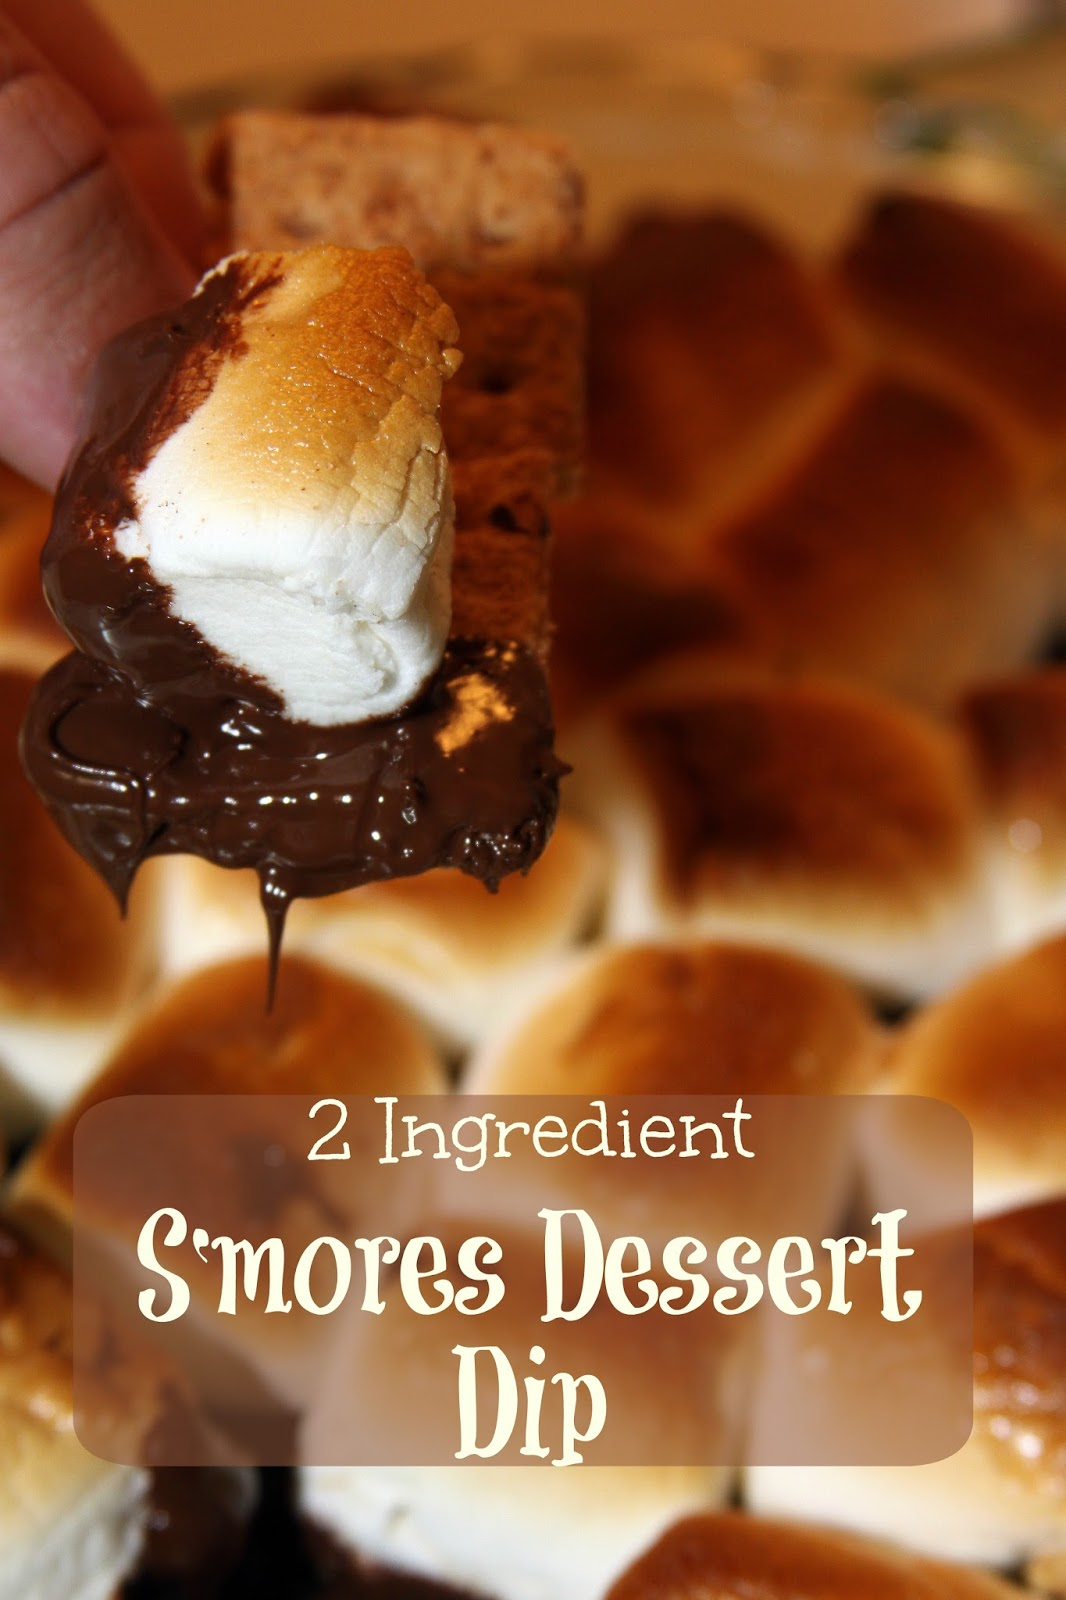 For the Love of Food: 2 Ingredient S'mores Dessert Dip